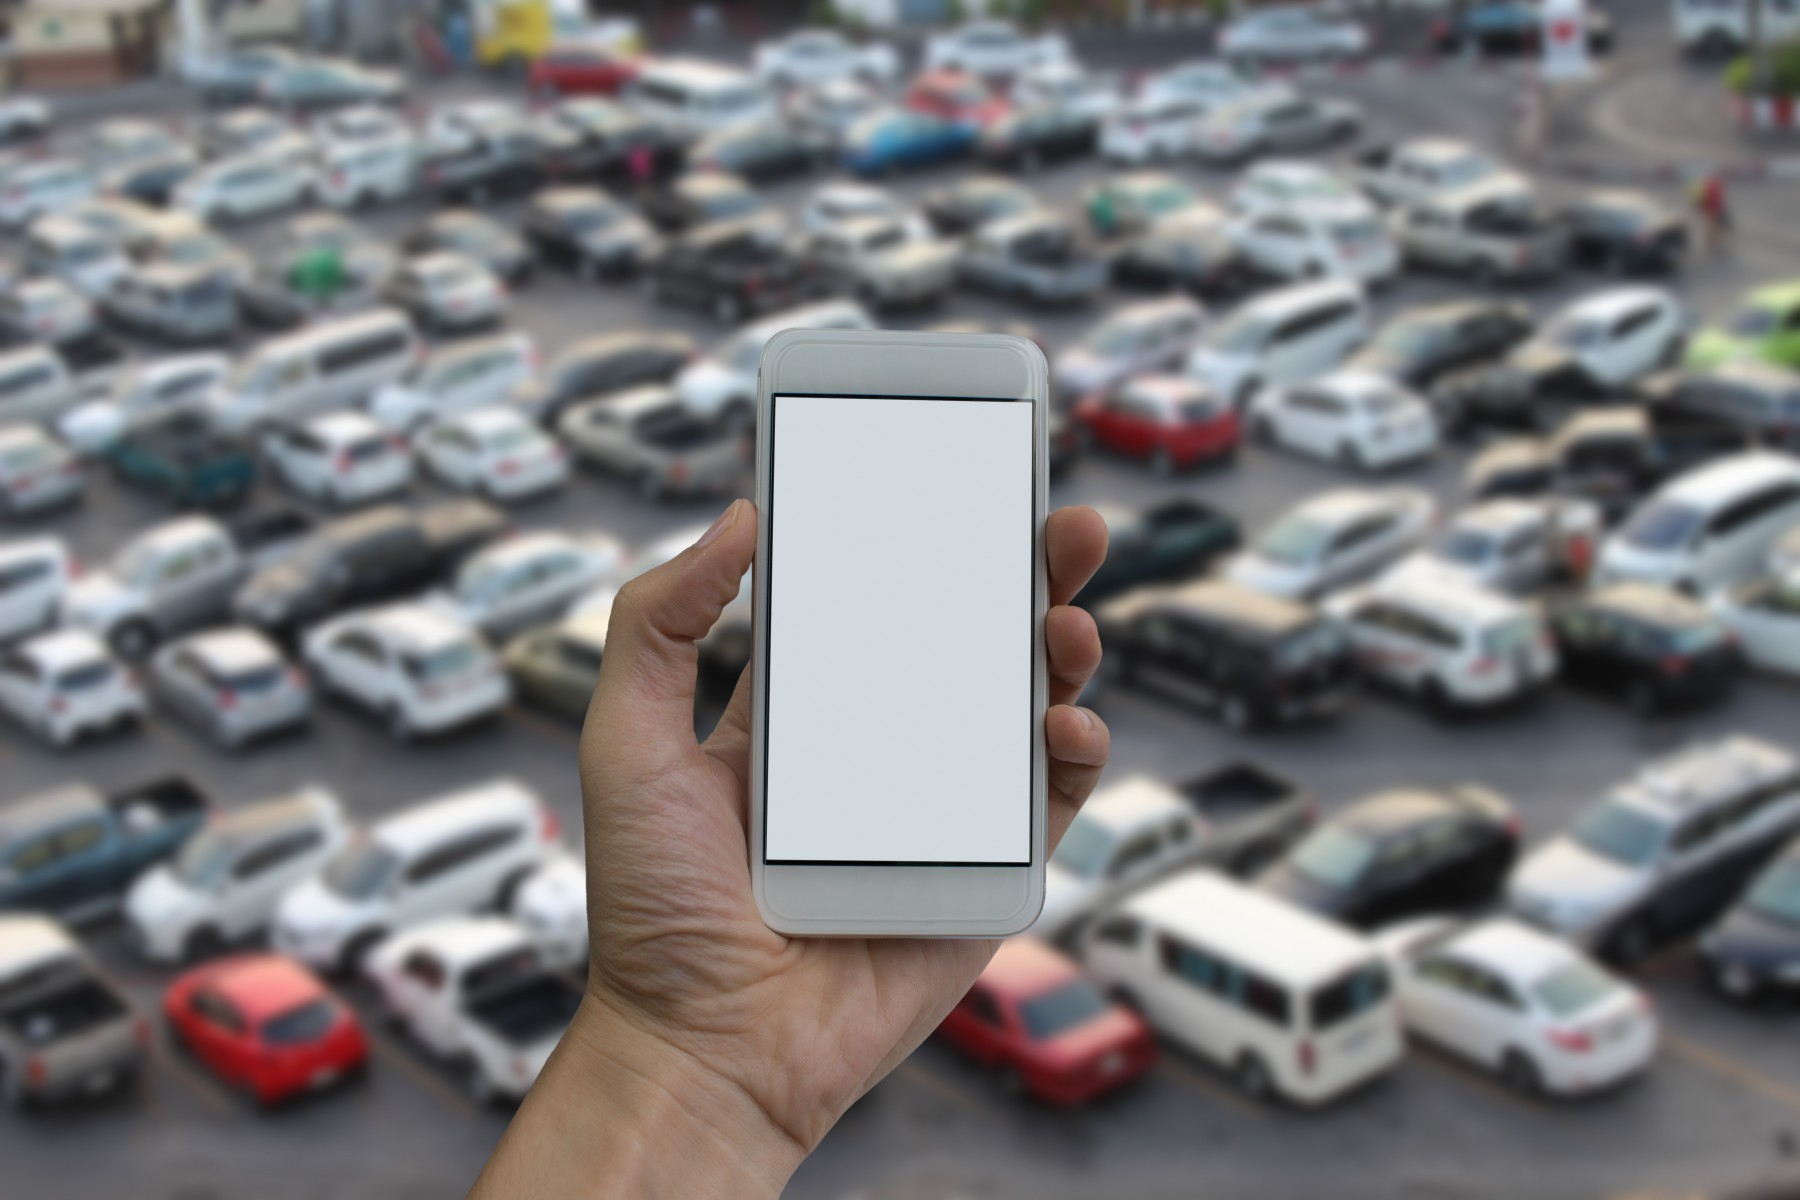 Oxfordshire County Council to develop high-tech parking solution